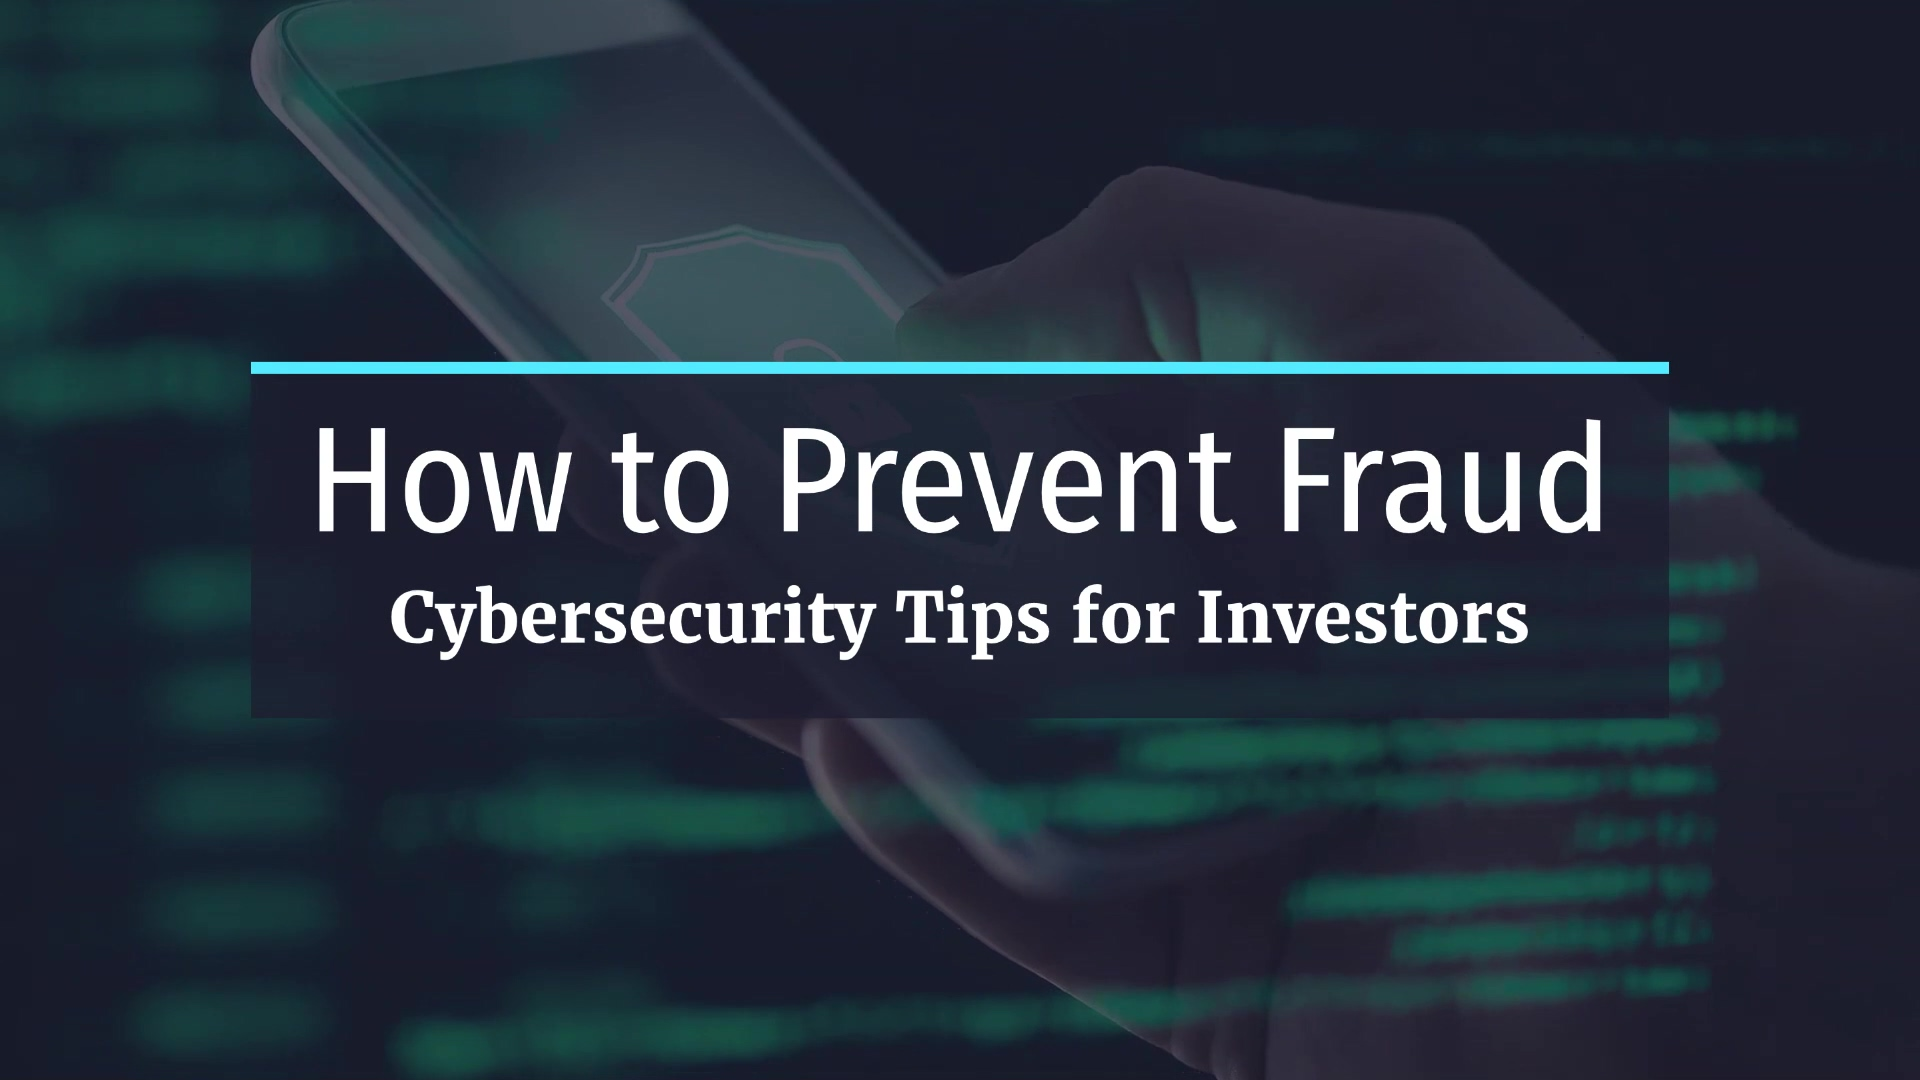 How_to_Prevent_Fraud (1)